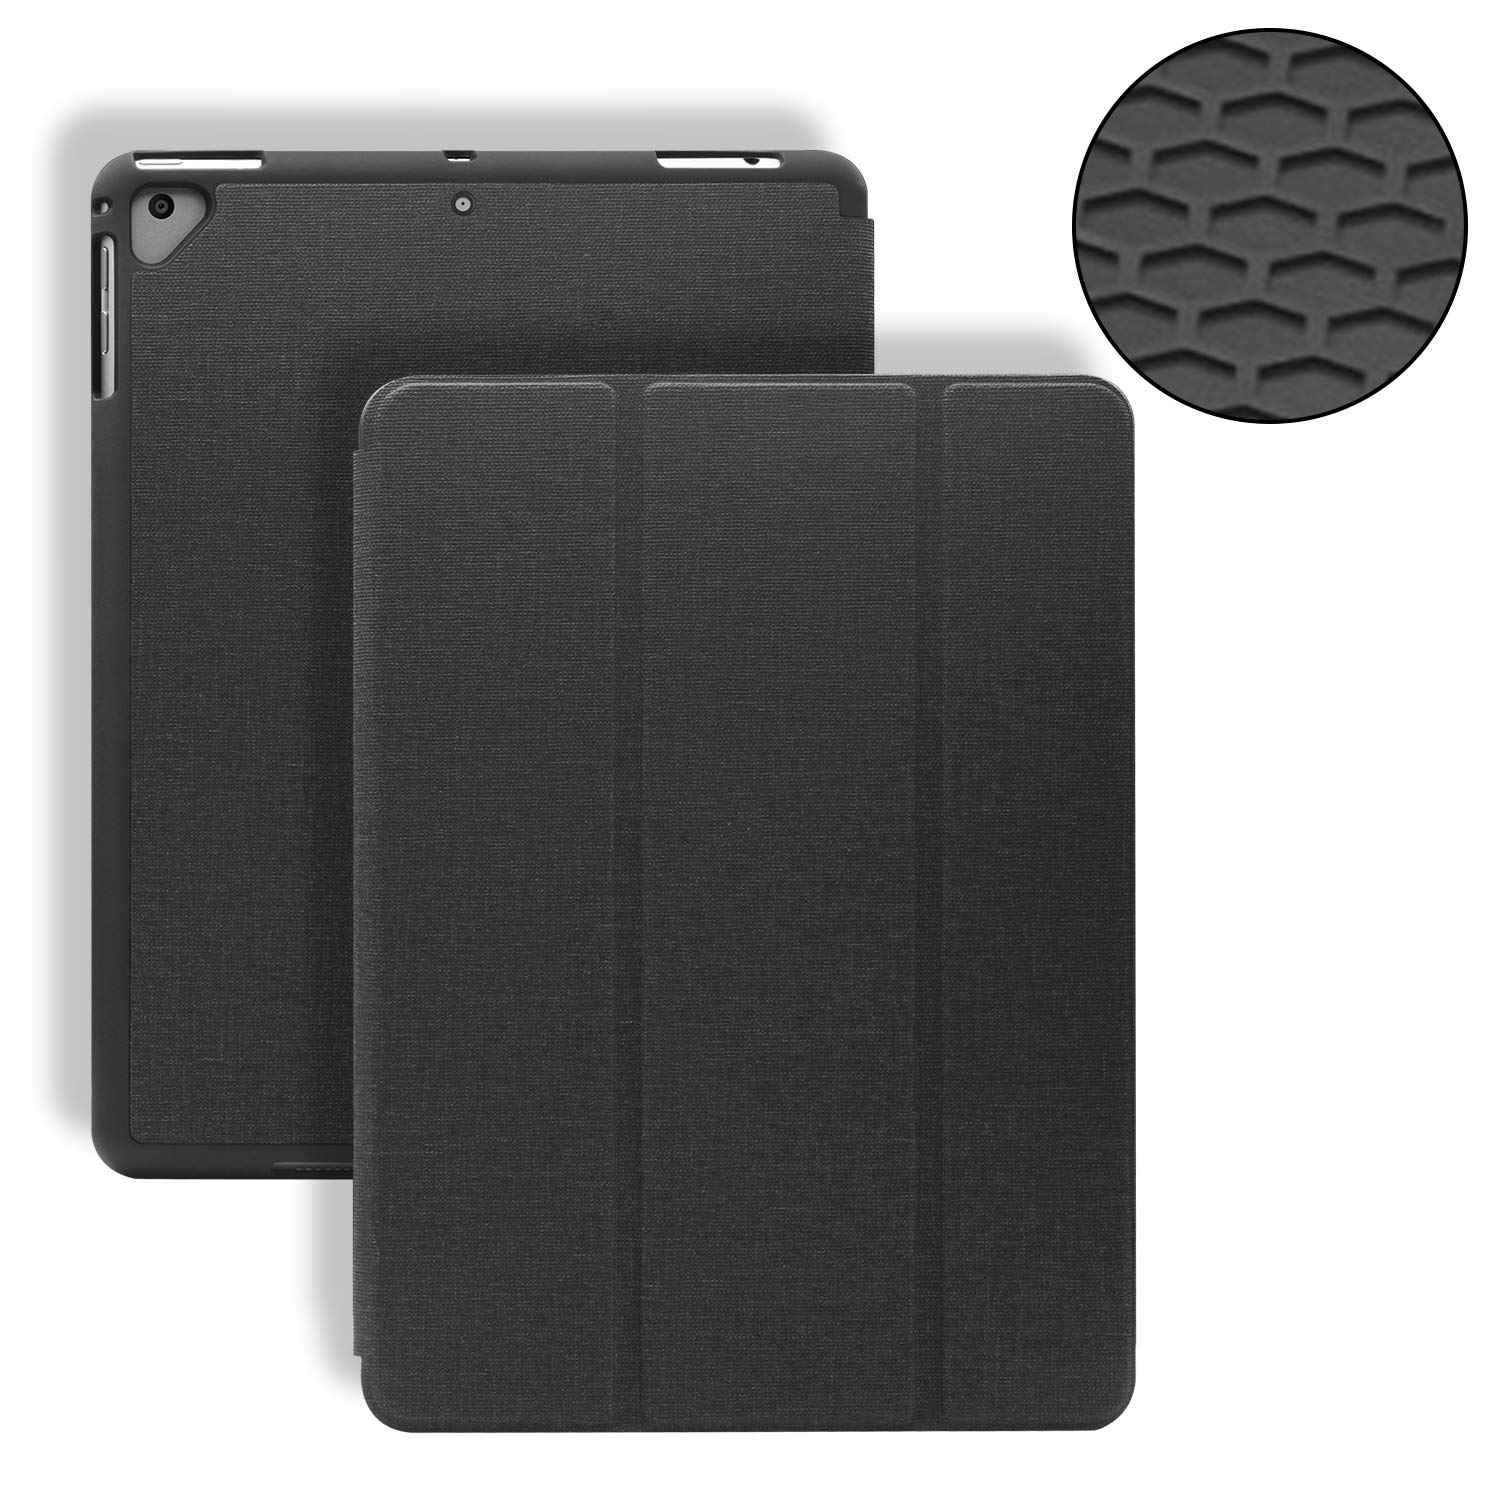 GKK for 9.7 iPad 2017/2018, iPad Air 2, iPad Pro, iPad Air Case - Premium PU Leather Stand Cover - Soft Honeycomb Back Cover with Pencil Holder (Black)